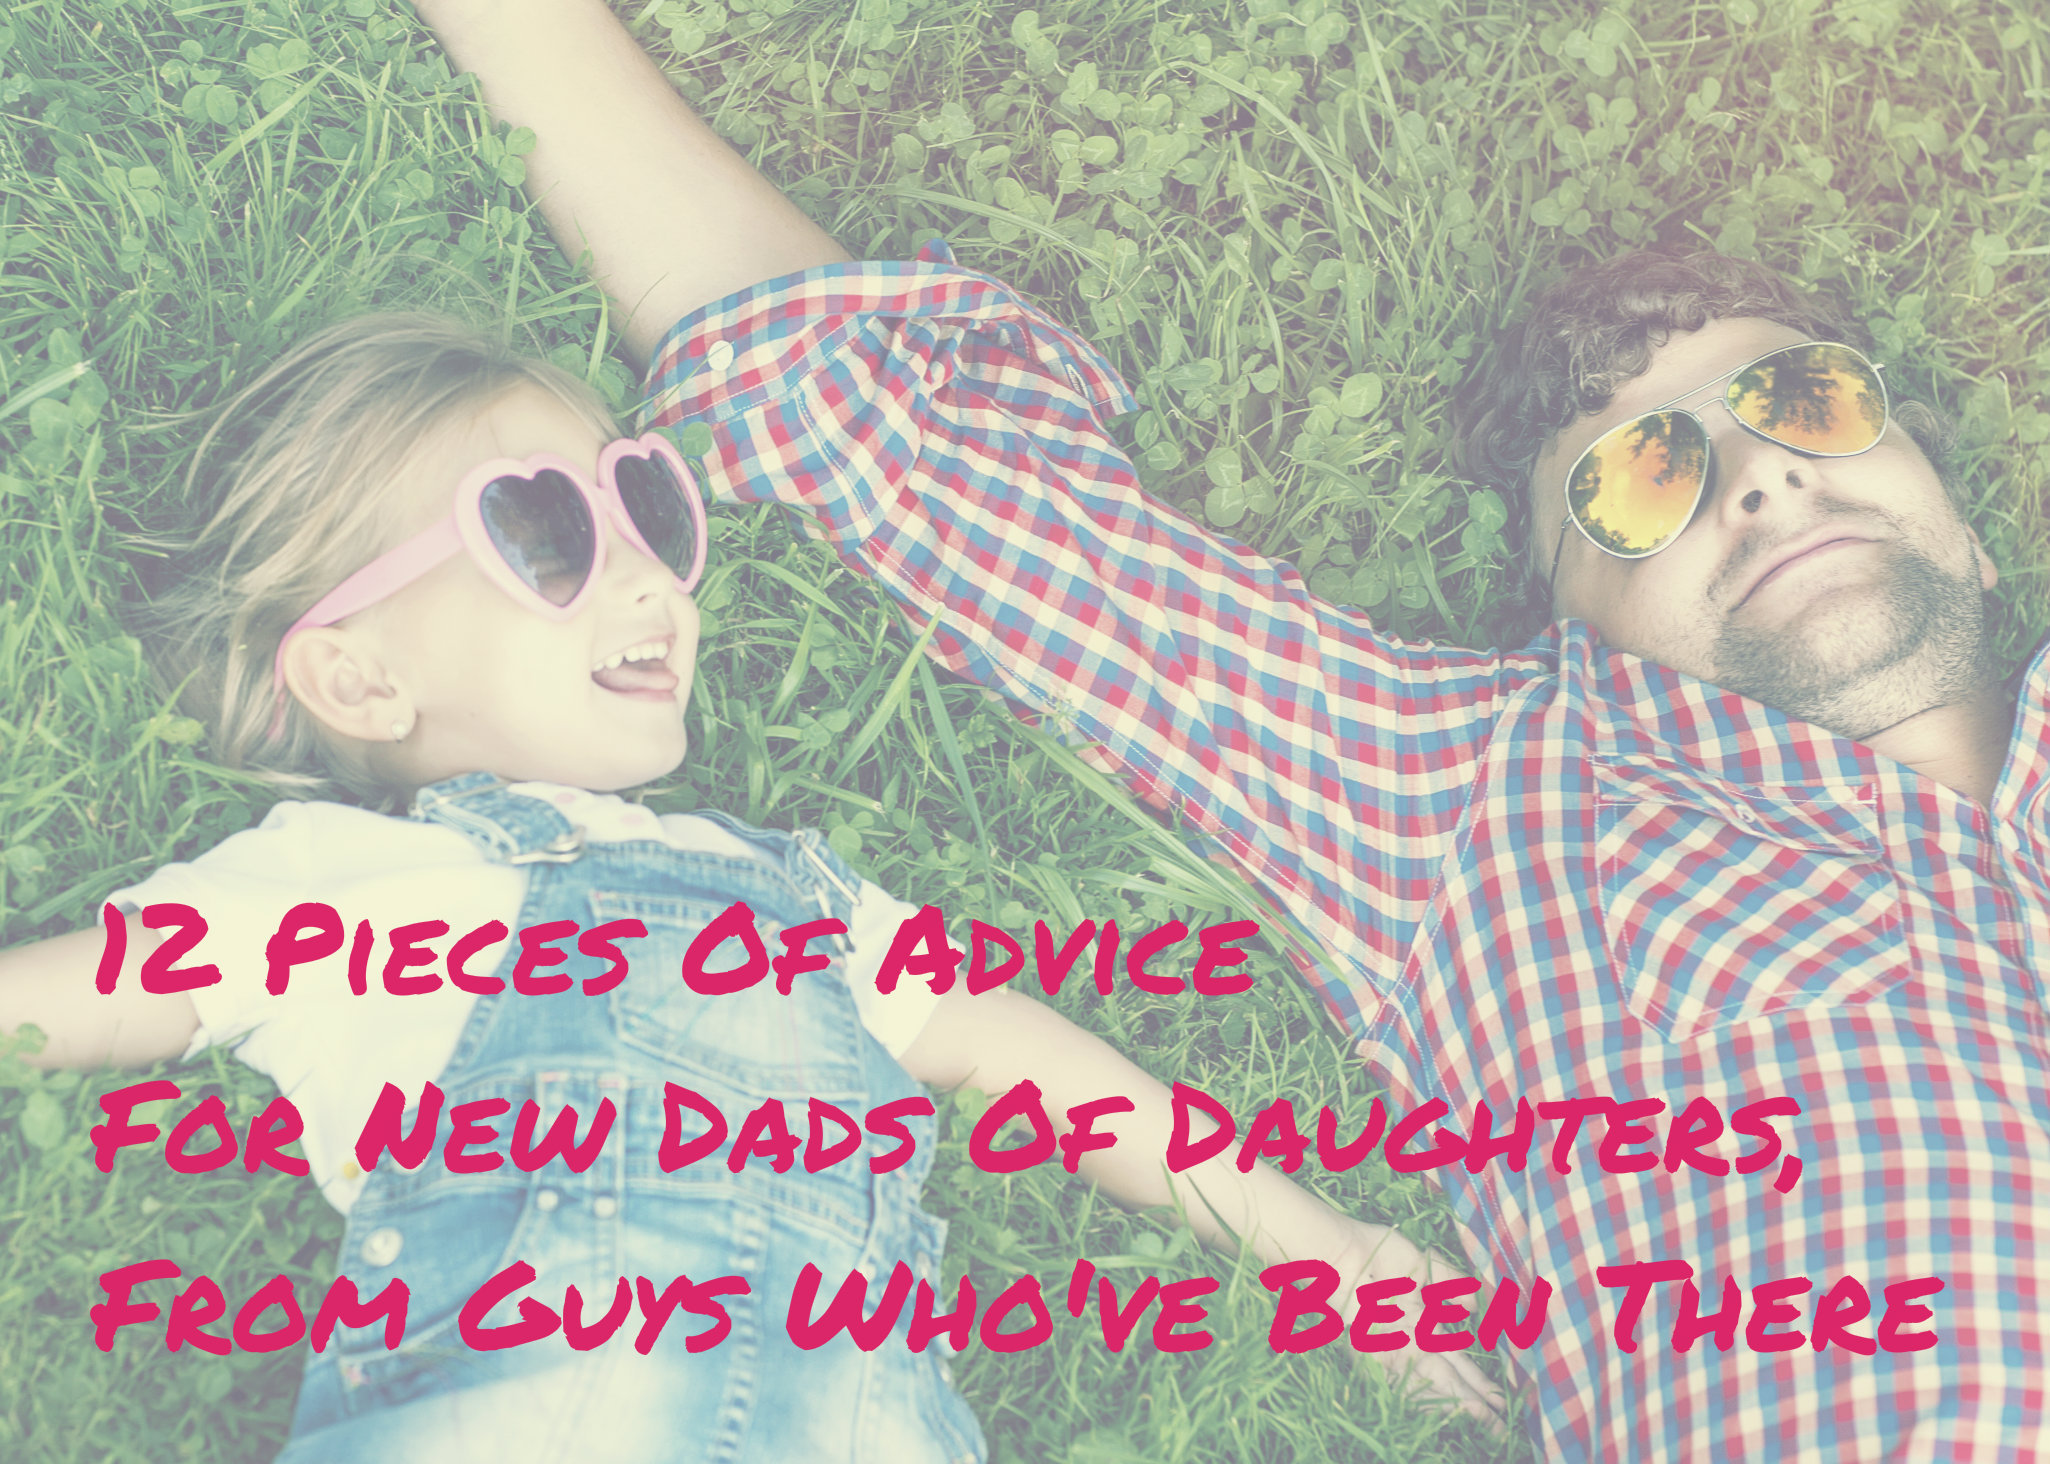 dads of daughters